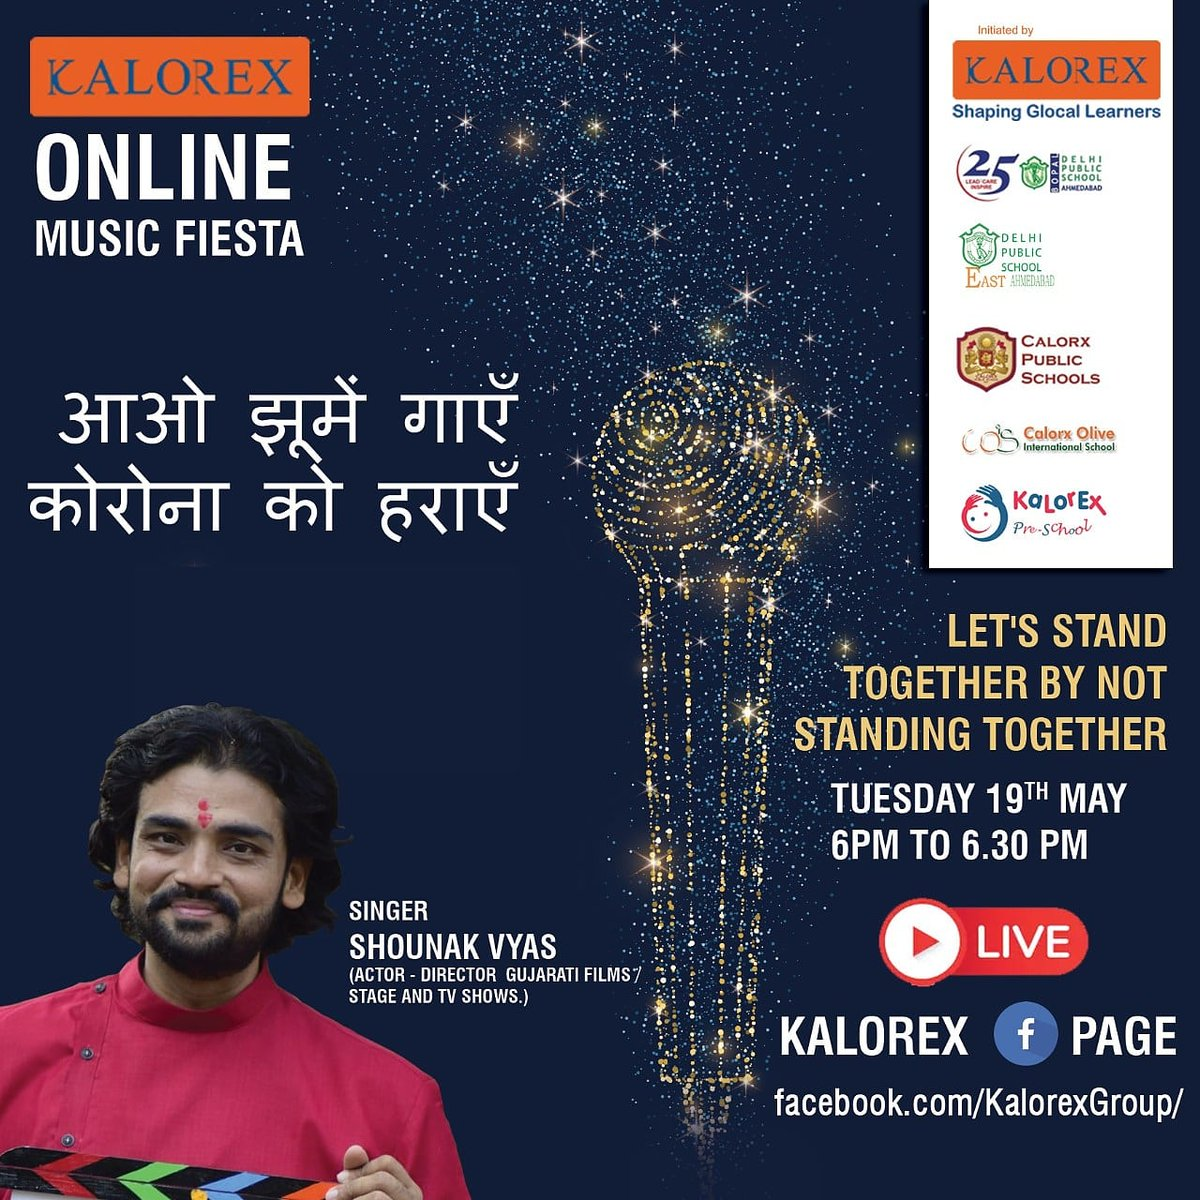 Kalorex Group is going live for Online Music Fiesta on Tuesday 19th May at 6.00 PM to 6.30 PM. Let's Stand Together by Not Standing Together With  Shounak Vyas , only on Kalorex Group FB Page, Stay Tune, Stay Safe & Stay at Home.  #kalorex Facebook Live #StayHome https://t.co/DKYEQuBkG6